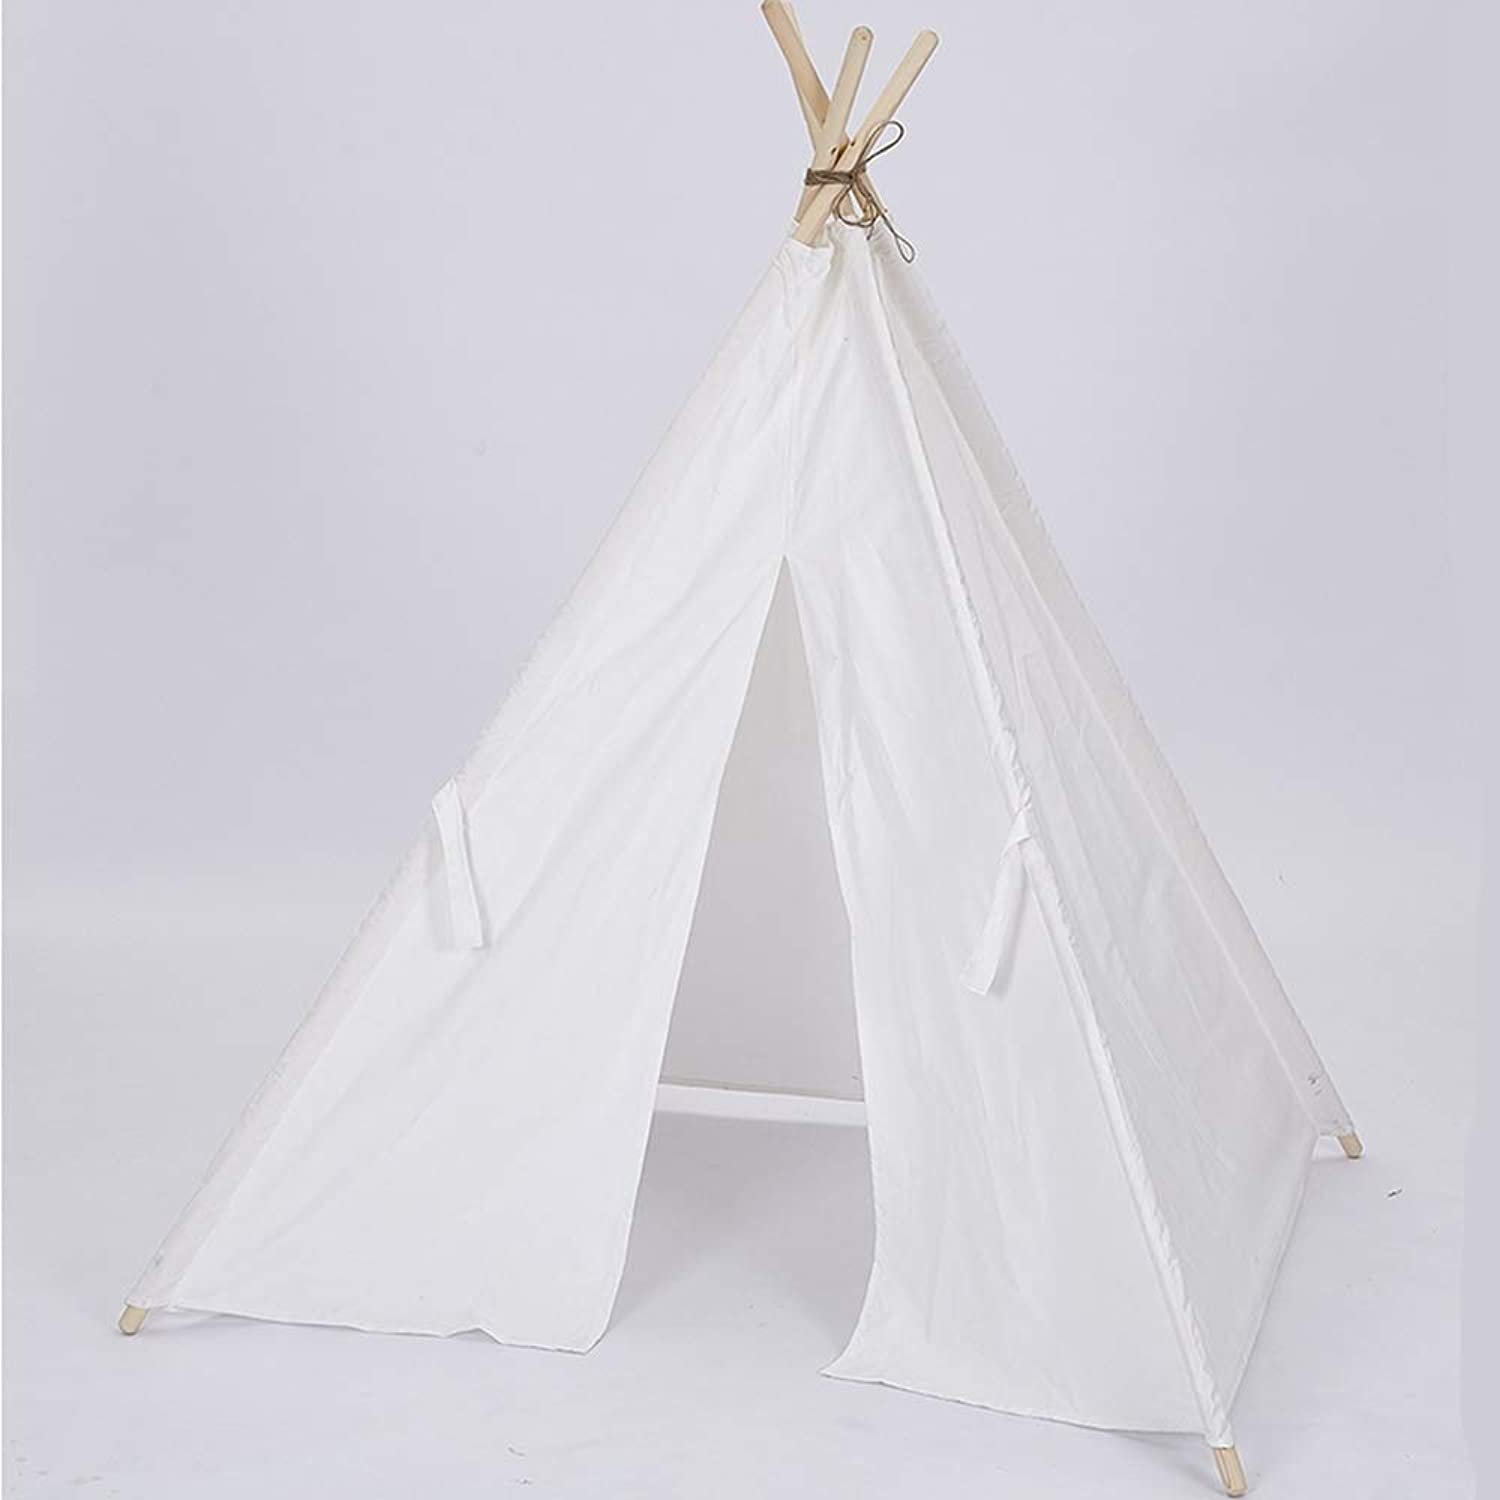 LIJIE Teepee Tent For Kids, Portable Indoor Outdoor Tent With For Boys & Girls,White 135cm Tall